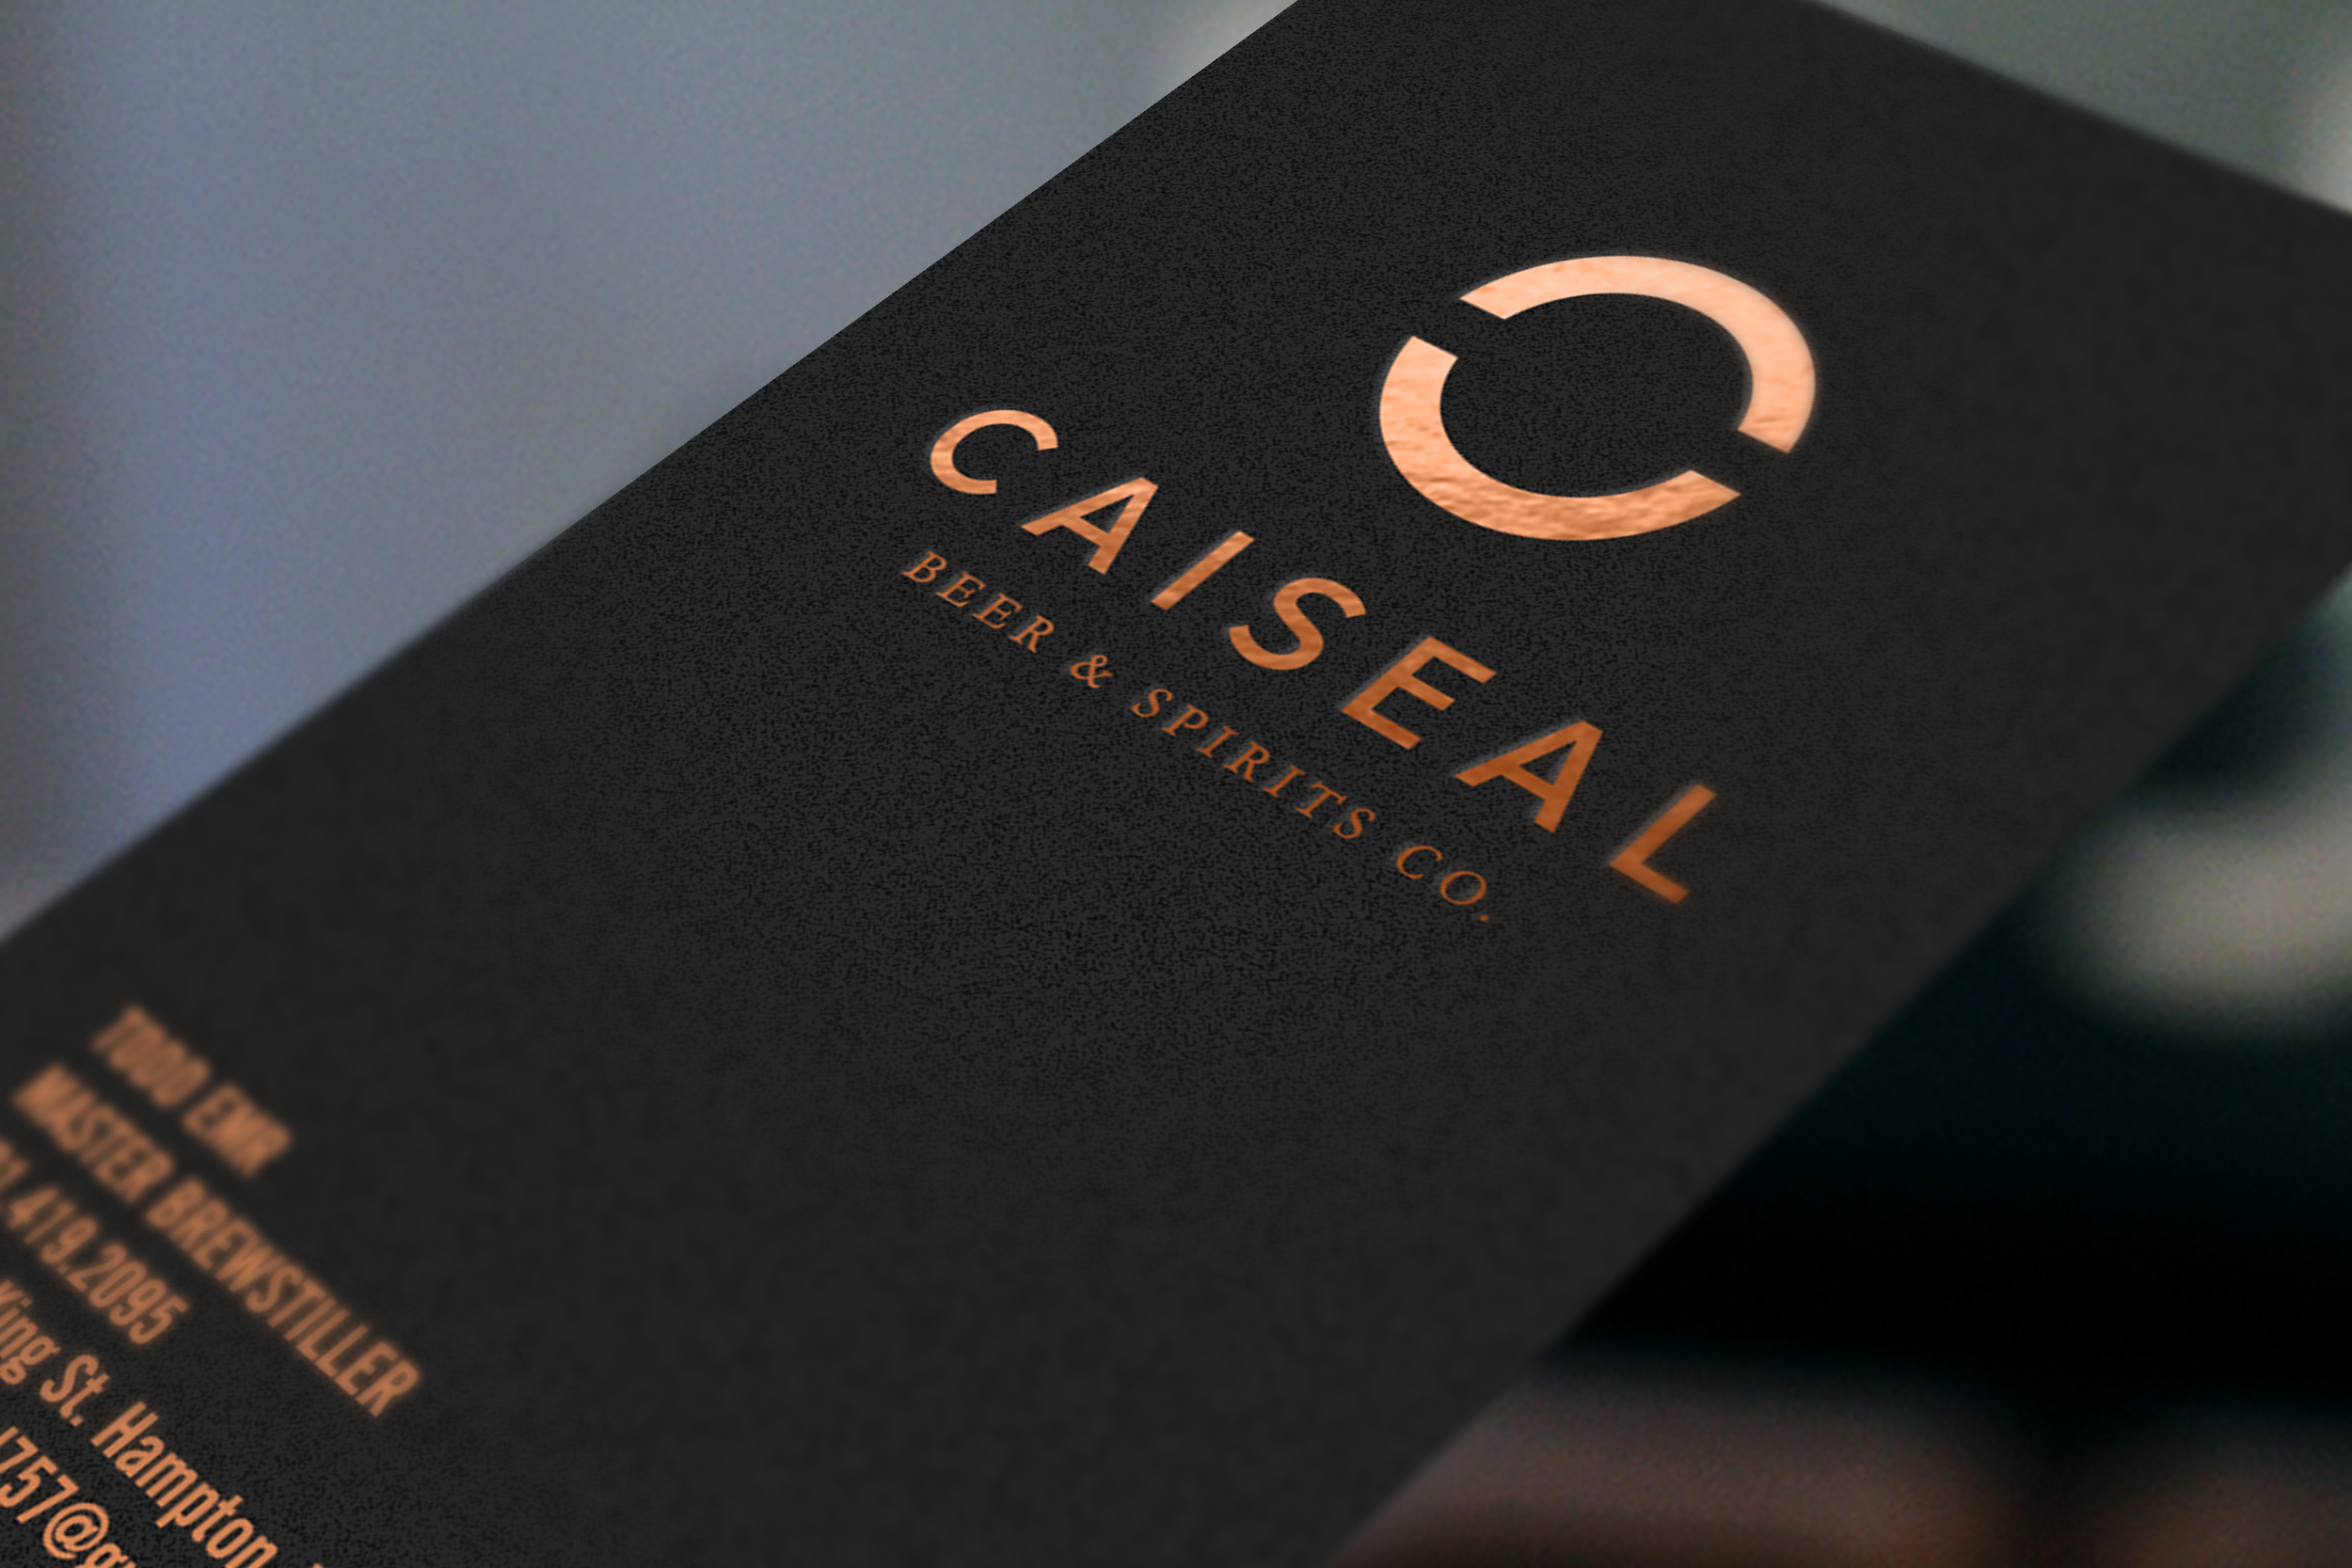 Copper Biz Card FoilMockUp.jpg